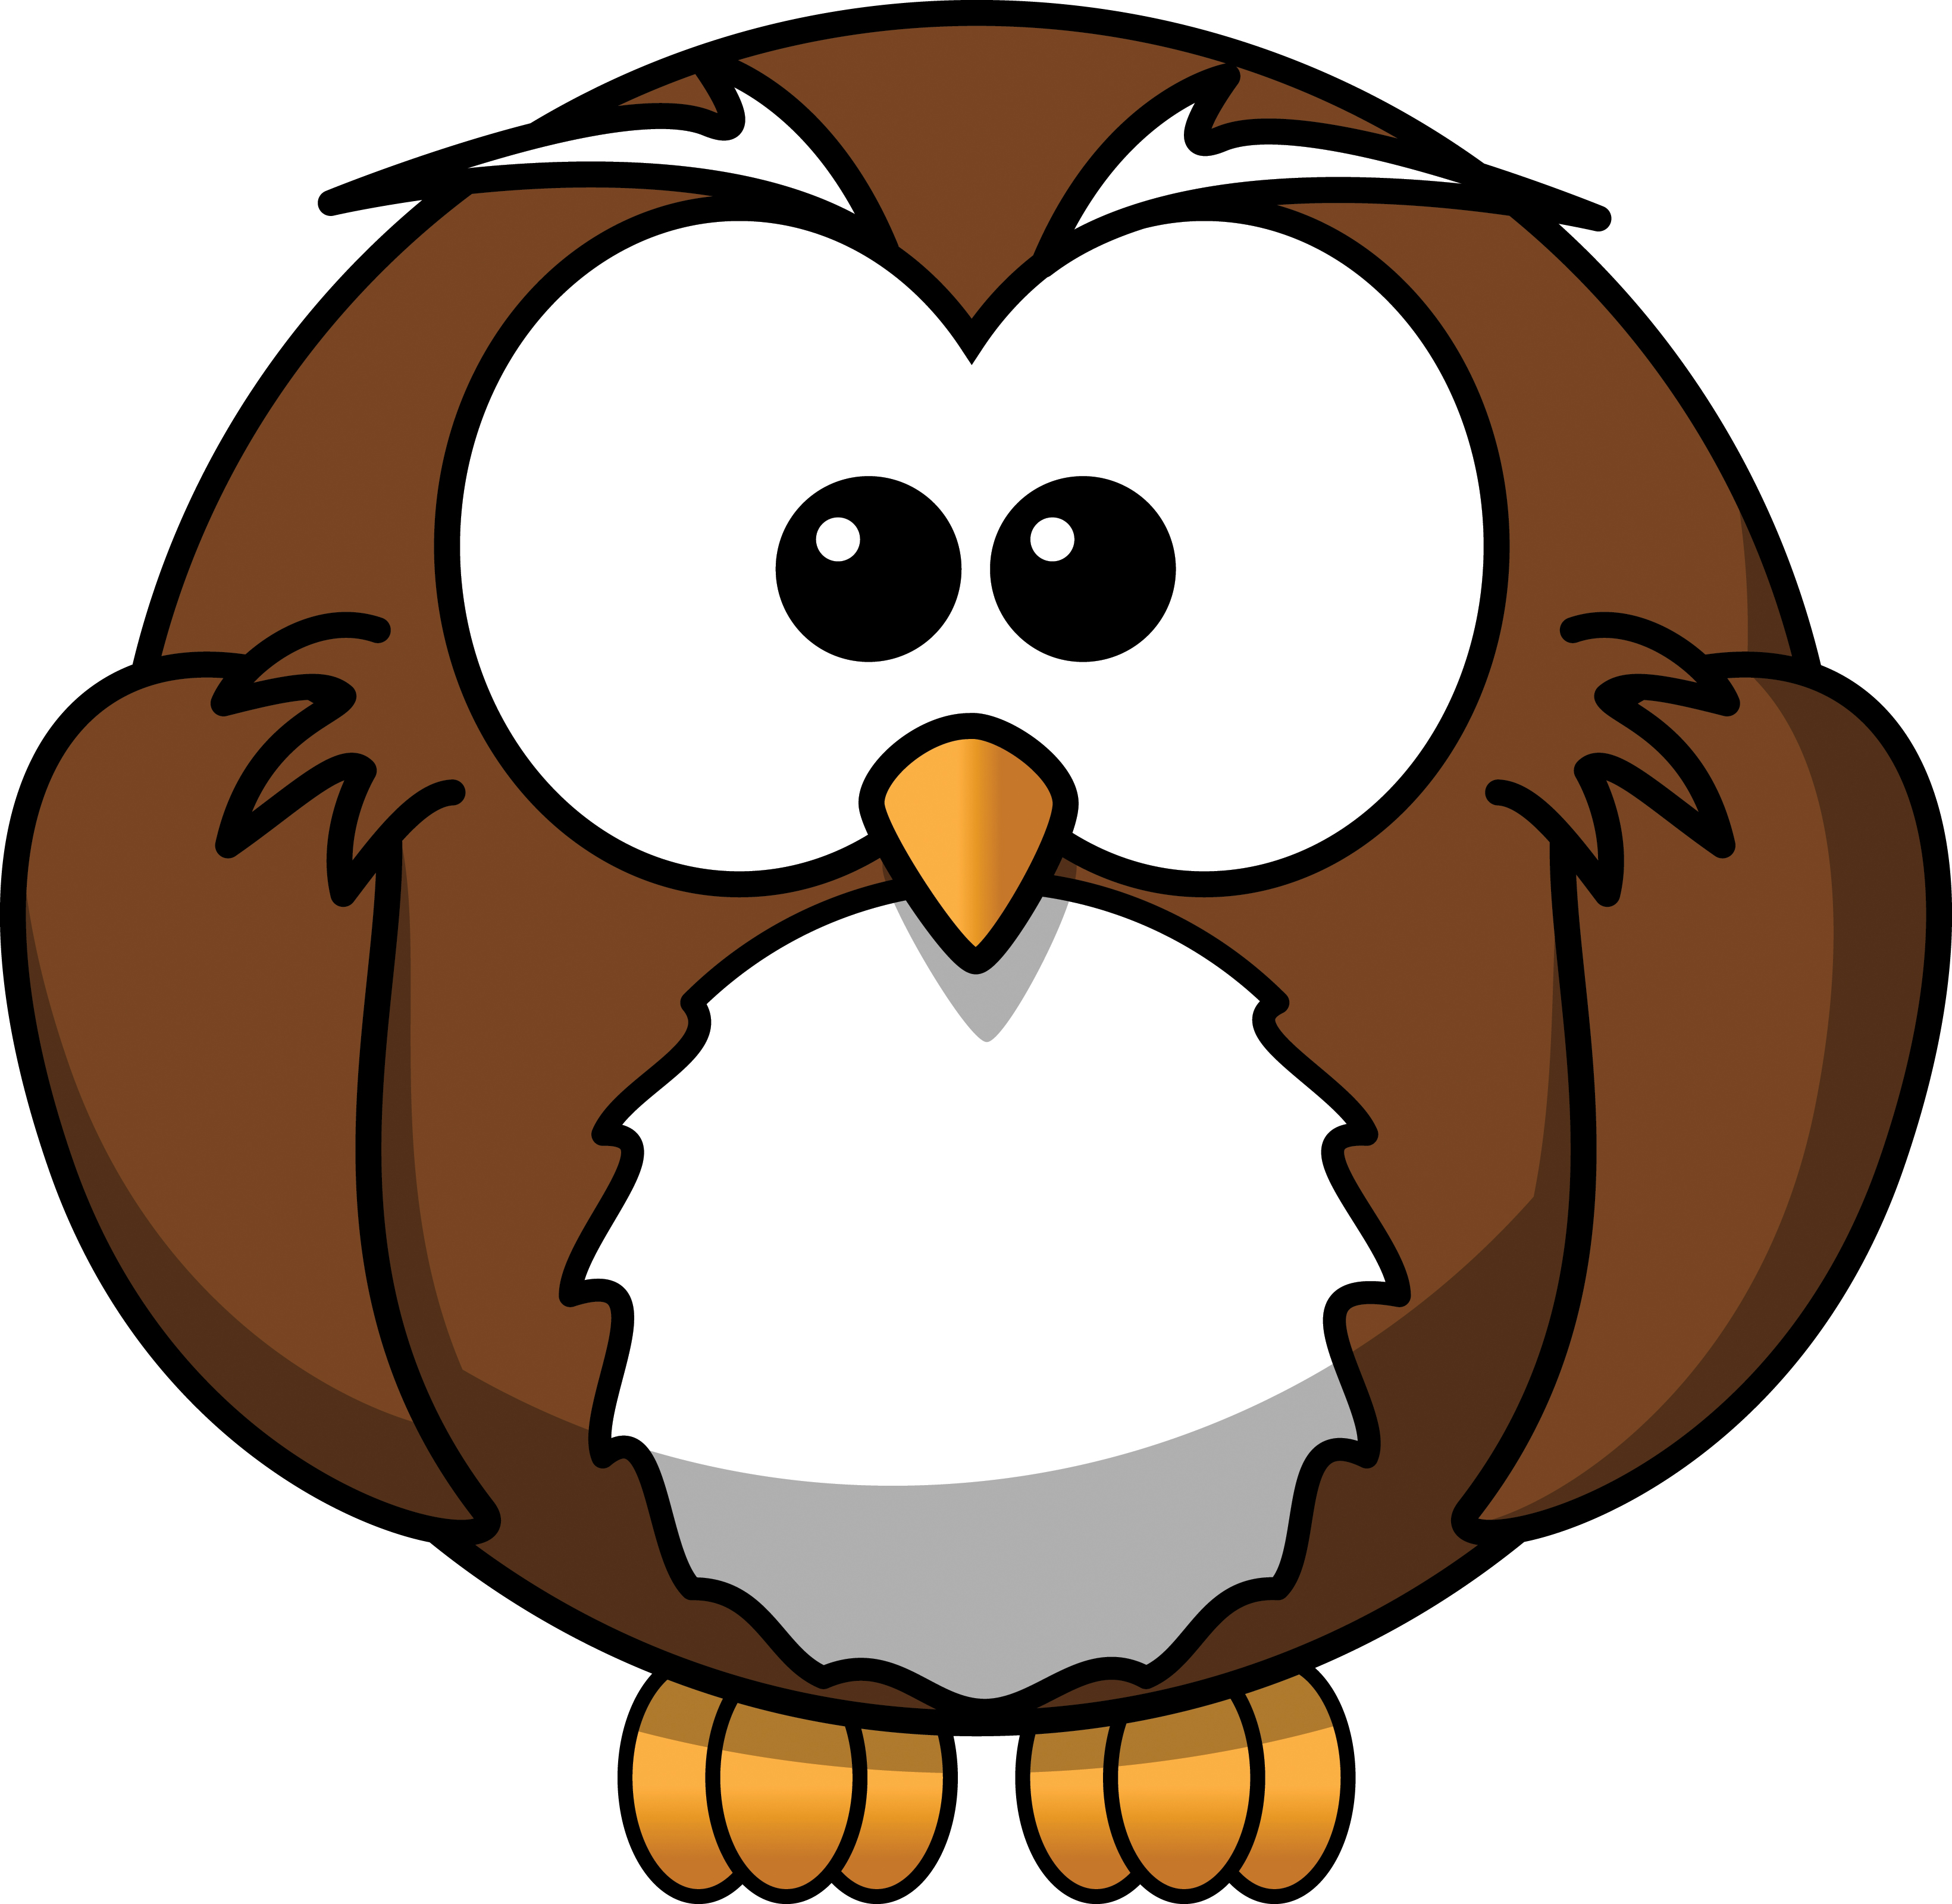 Free Cartoon Owl Clipart-Free Cartoon Owl Clipart-5